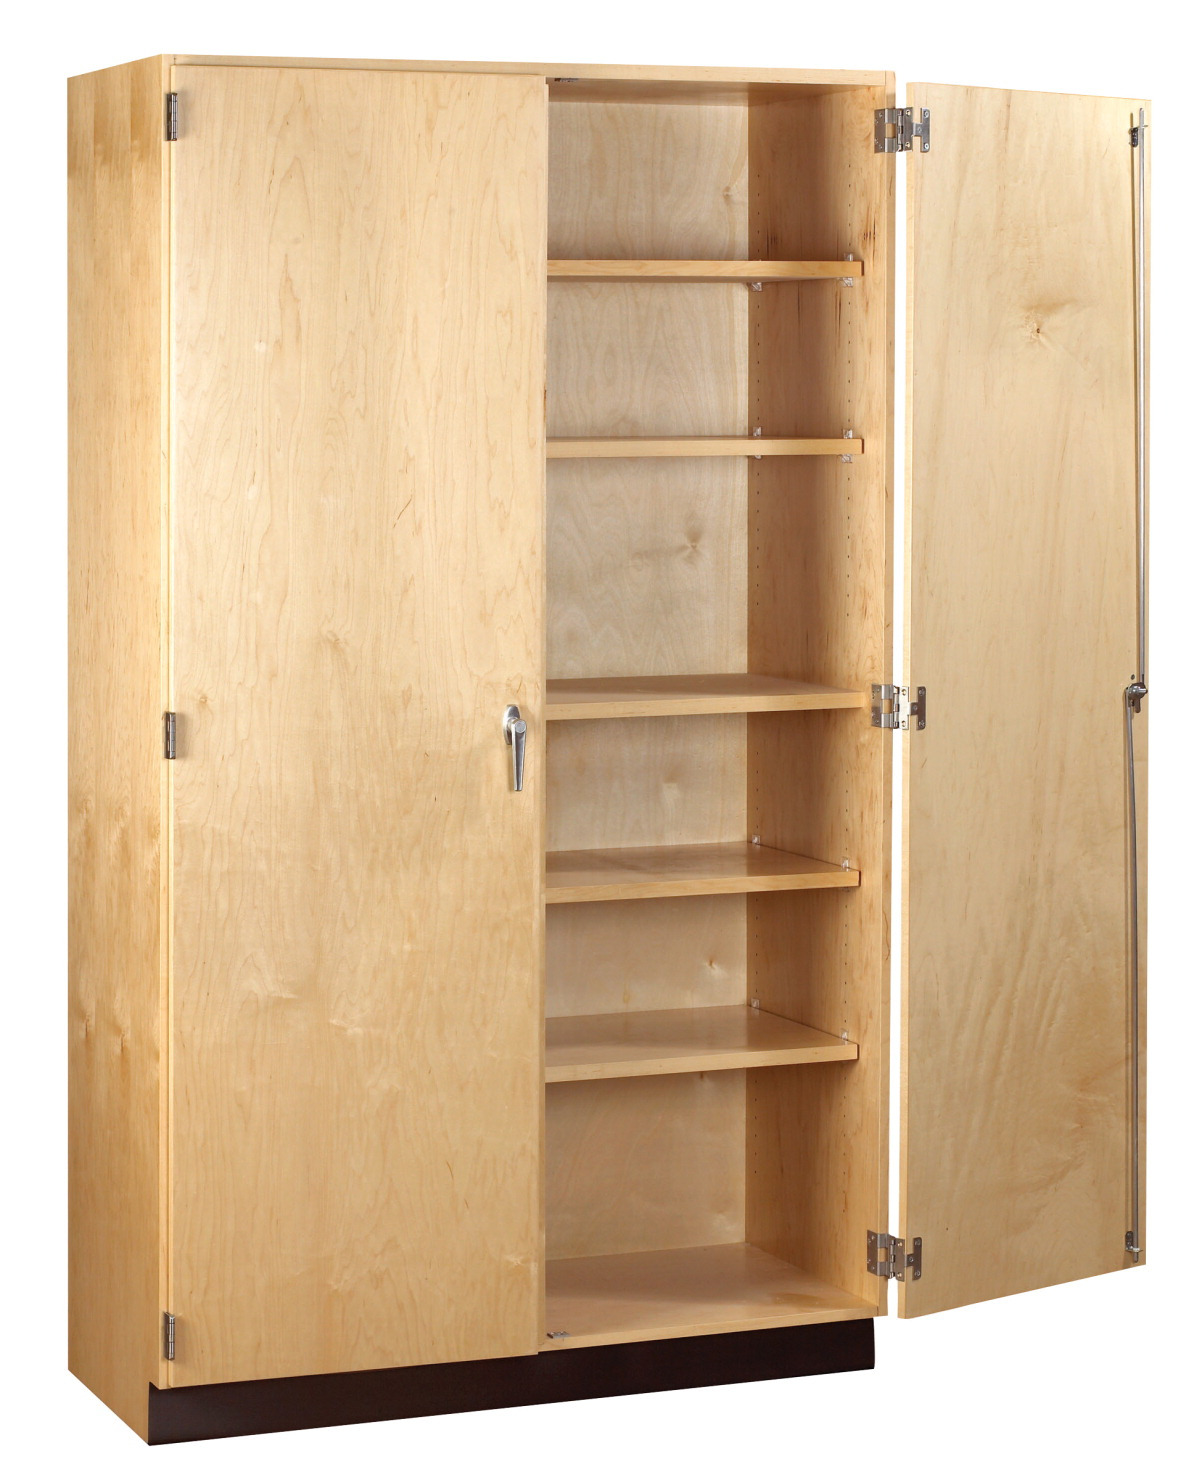 Tall Storage Cabinets with Doors Fresh Diversifed Woodcrafts Tall Storage Cabinet 48 X 22 X 84 Inches Maple Earth Friendly Uv